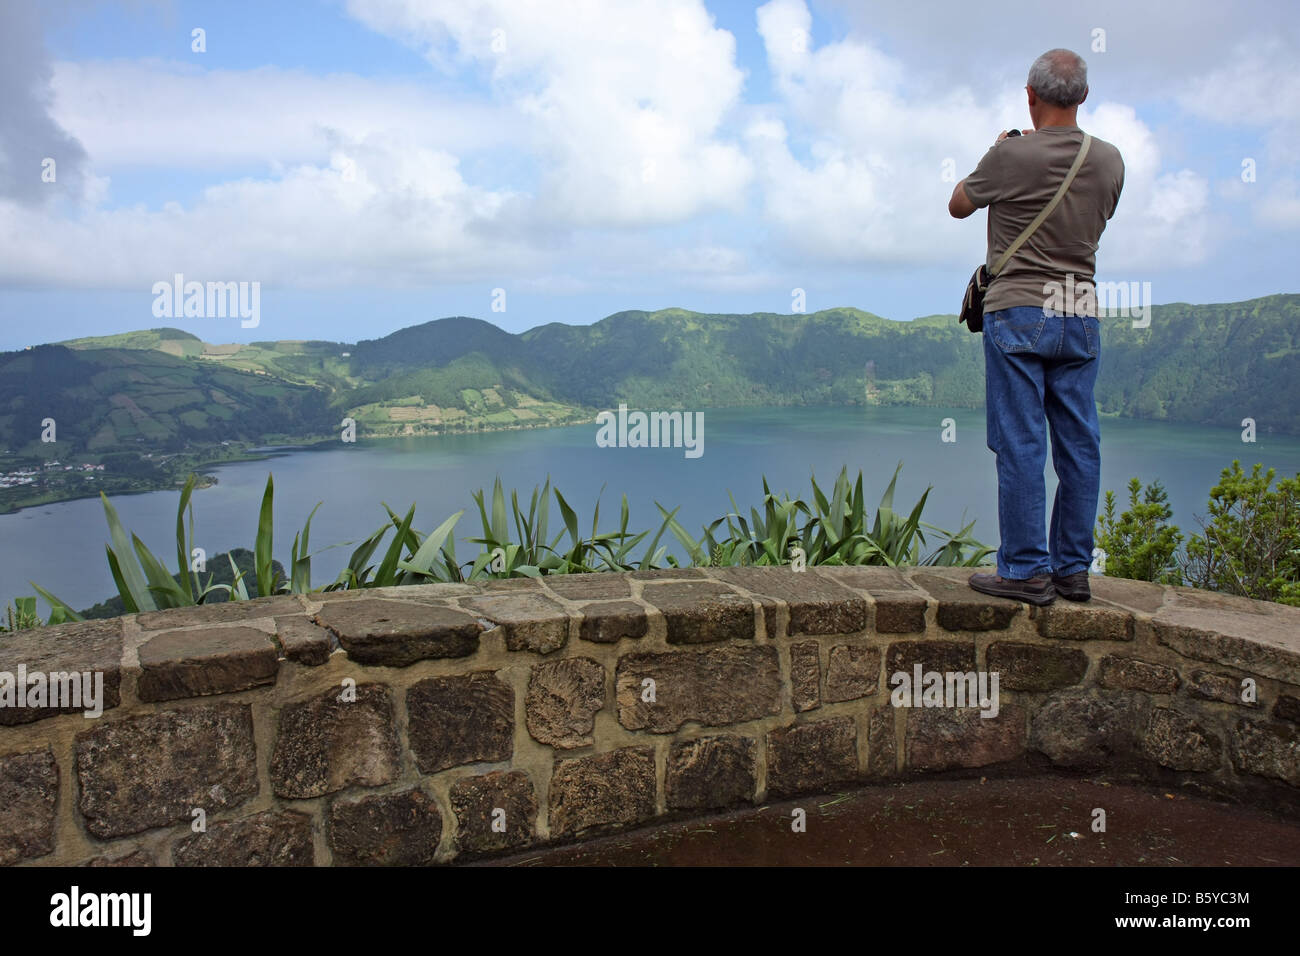 Man looking down at Lagoa Azul at Sete Cidades, São Miguel, Azores, Portugal - Stock Image